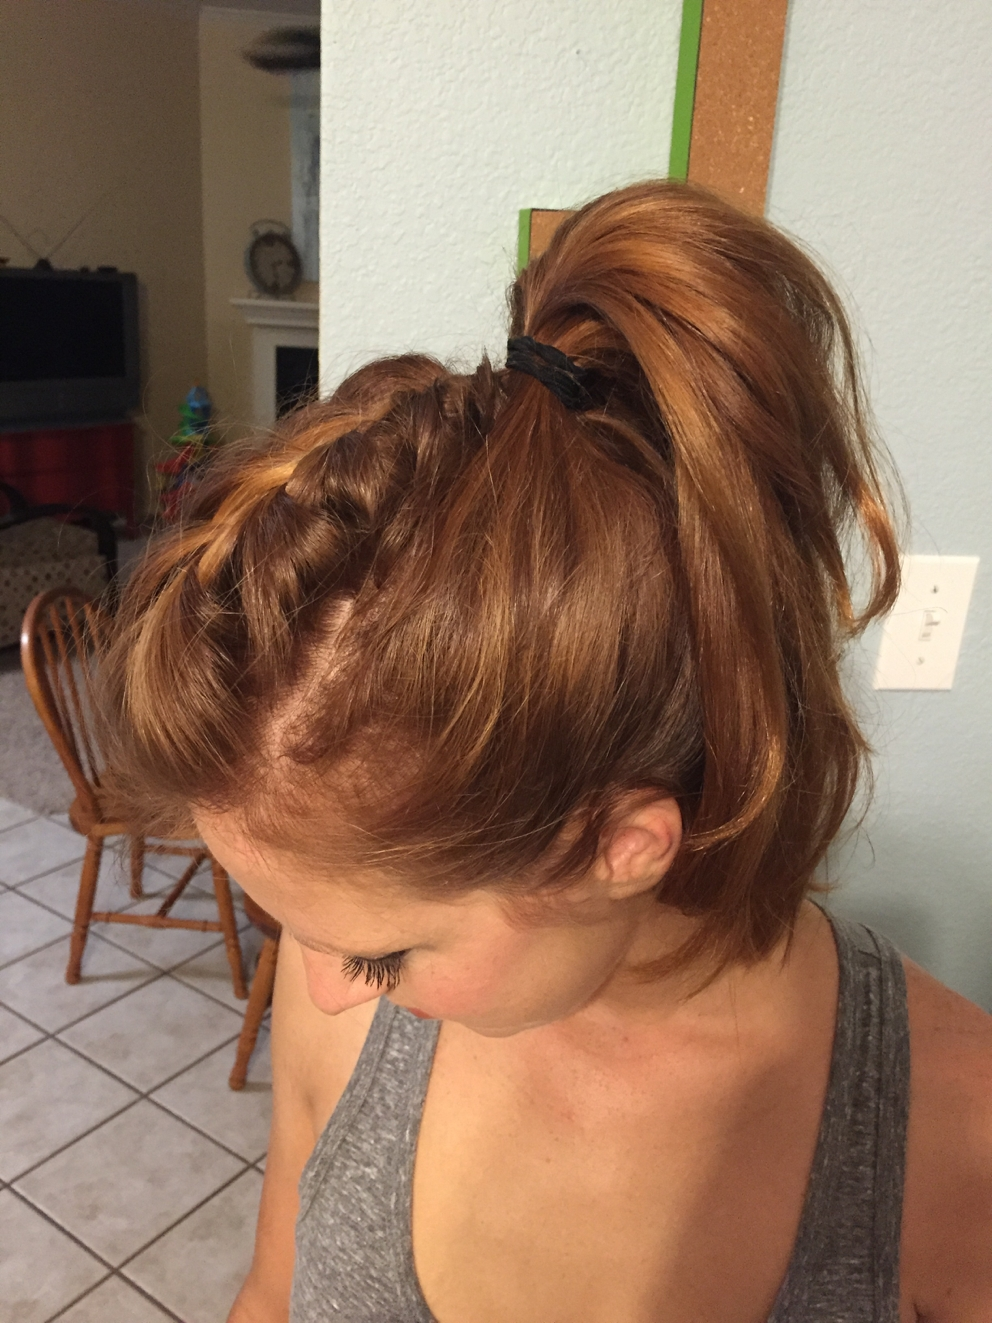 How To Get The Perfect Mohawk Ponytail – Perky Pony Regarding Latest Punky Ponytail Hairstyles (View 9 of 20)